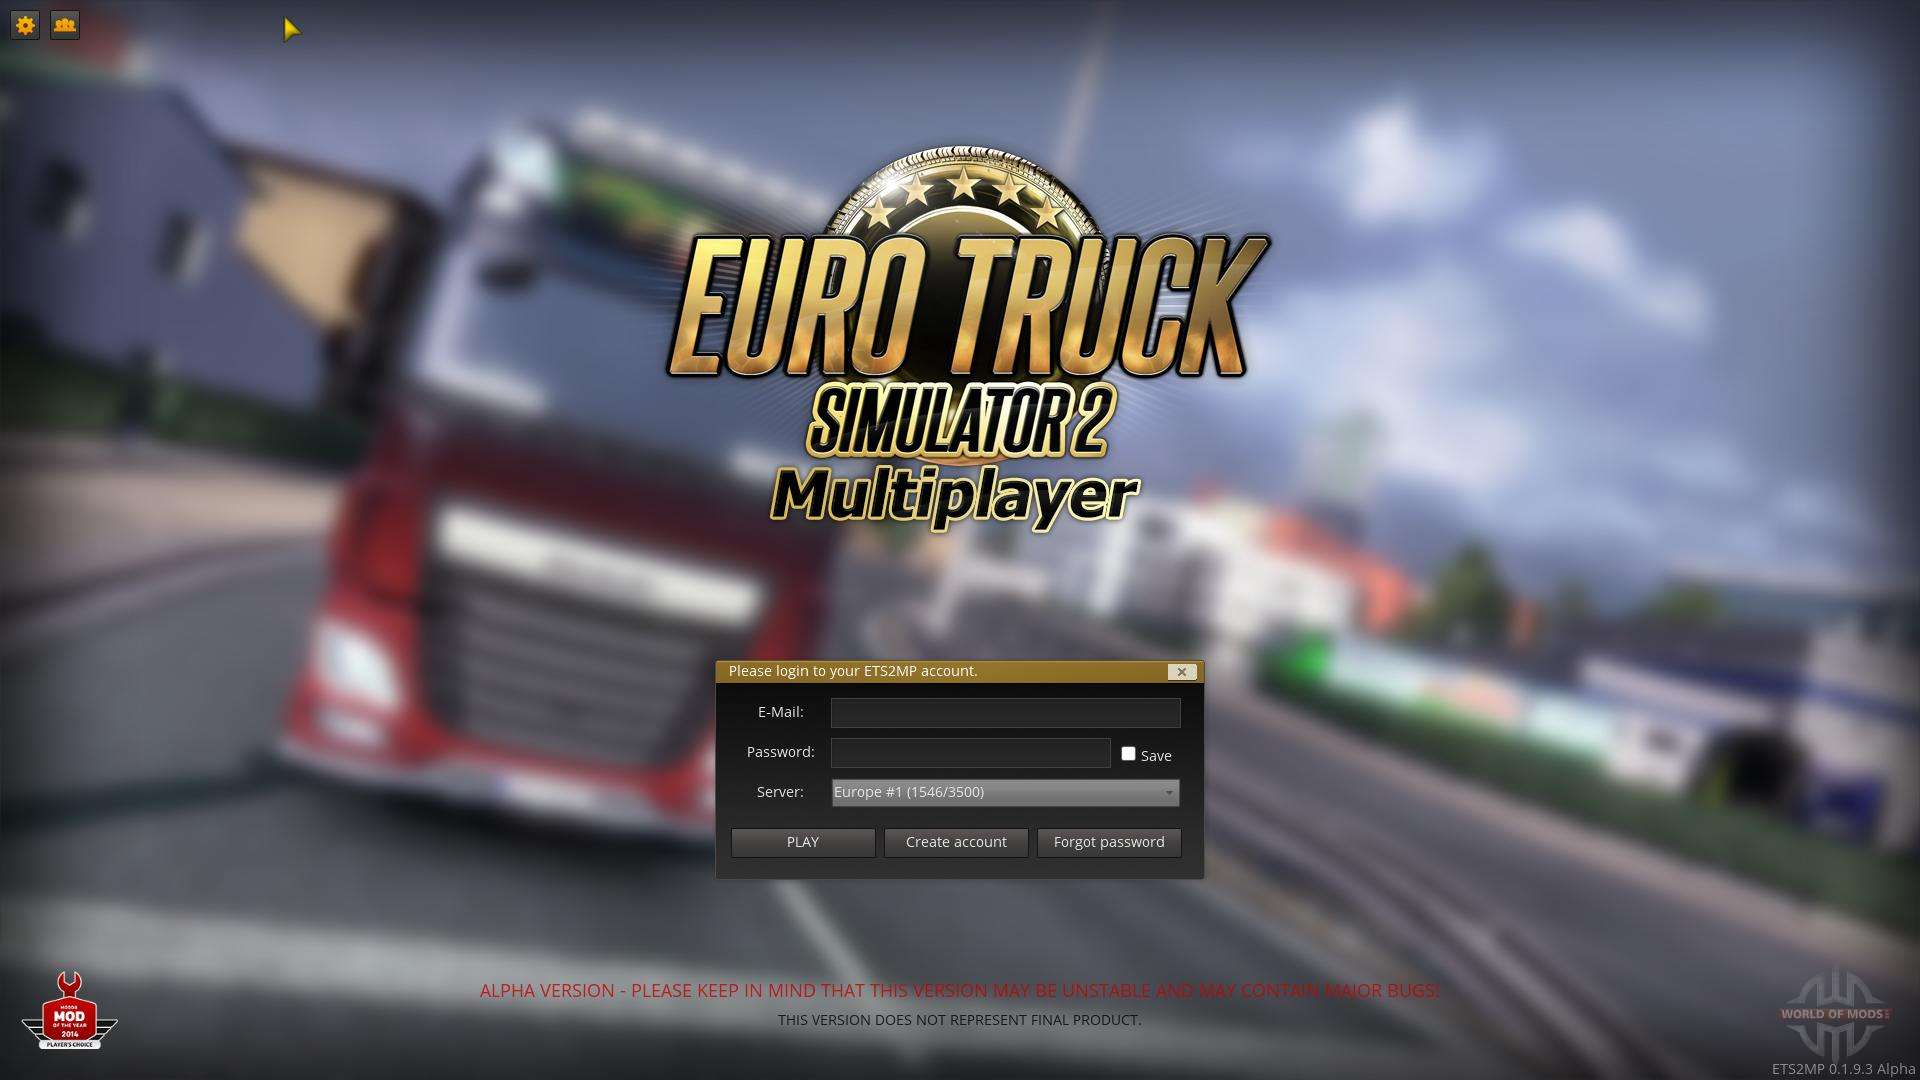 Euro truck simulator 2 multiplayer alpha (мультиплеер) скачать.